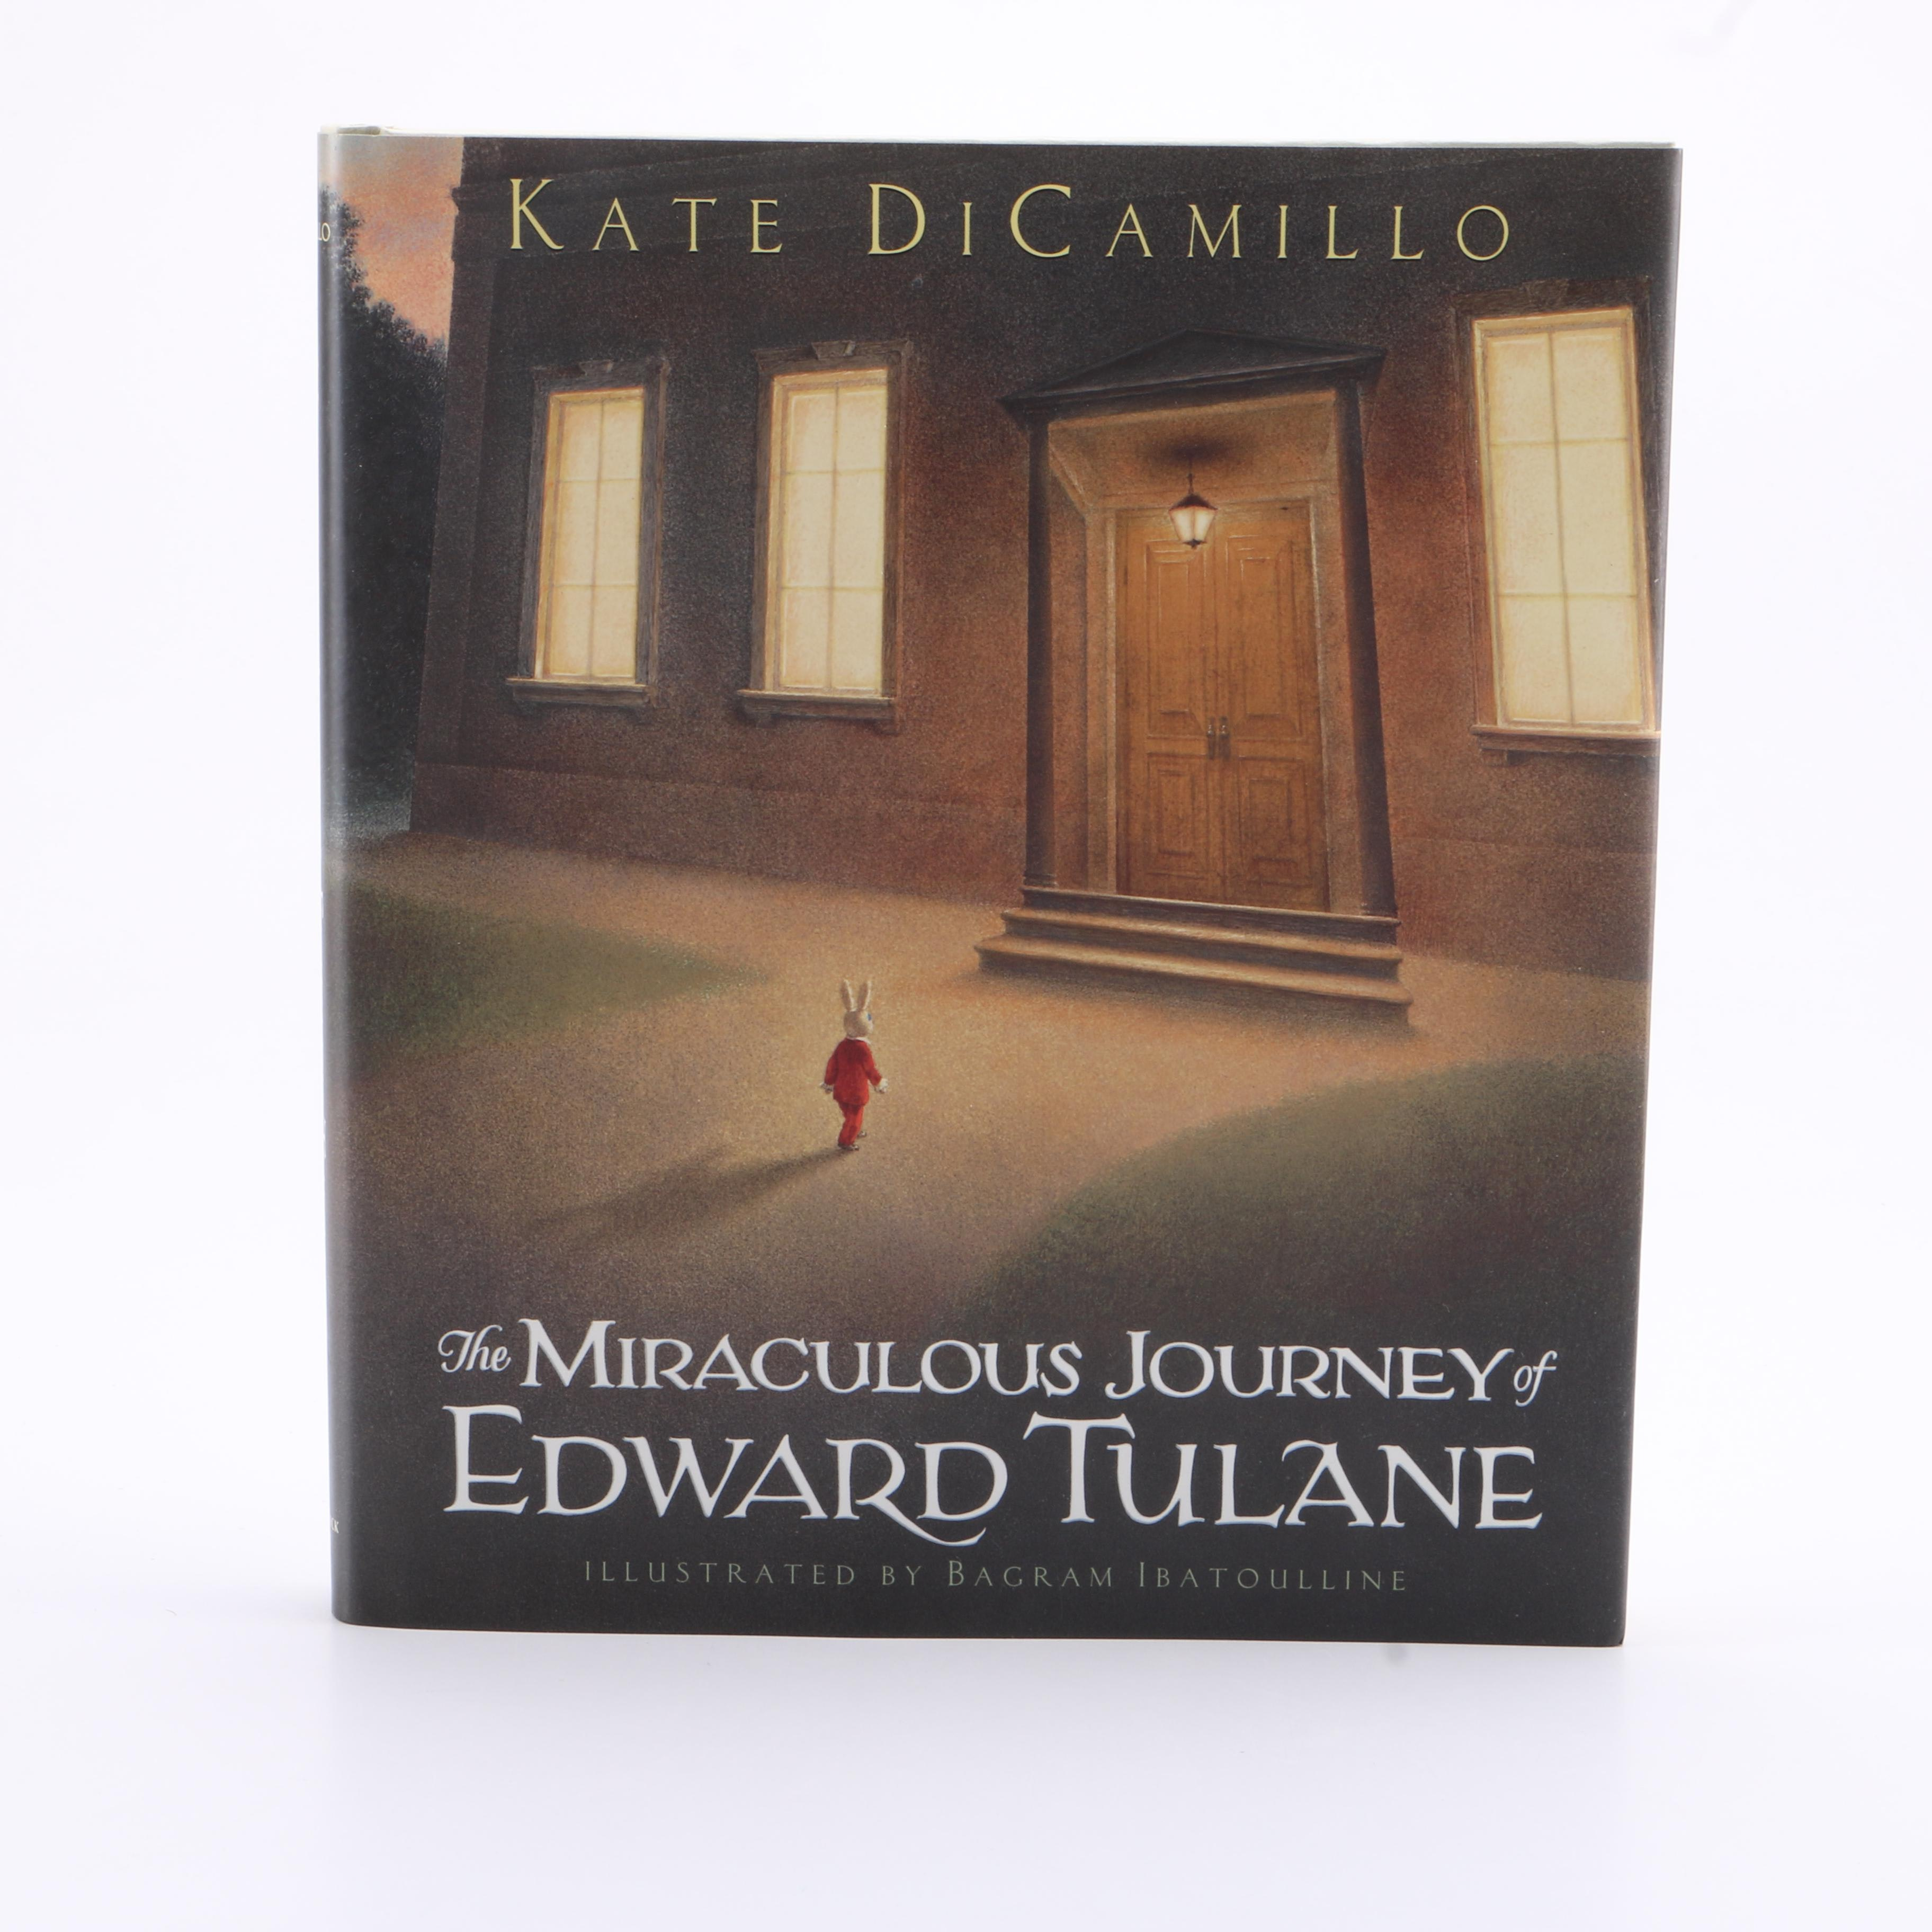 a critique of the miraculous journey of edward tulane a novel by kate dicamillo The miraculous journey of edward tulane - ebook written by kate dicamillo read this book using google play books app on your pc, android, ios devices download for offline reading, highlight, bookmark or take notes while you read the miraculous journey of edward tulane.